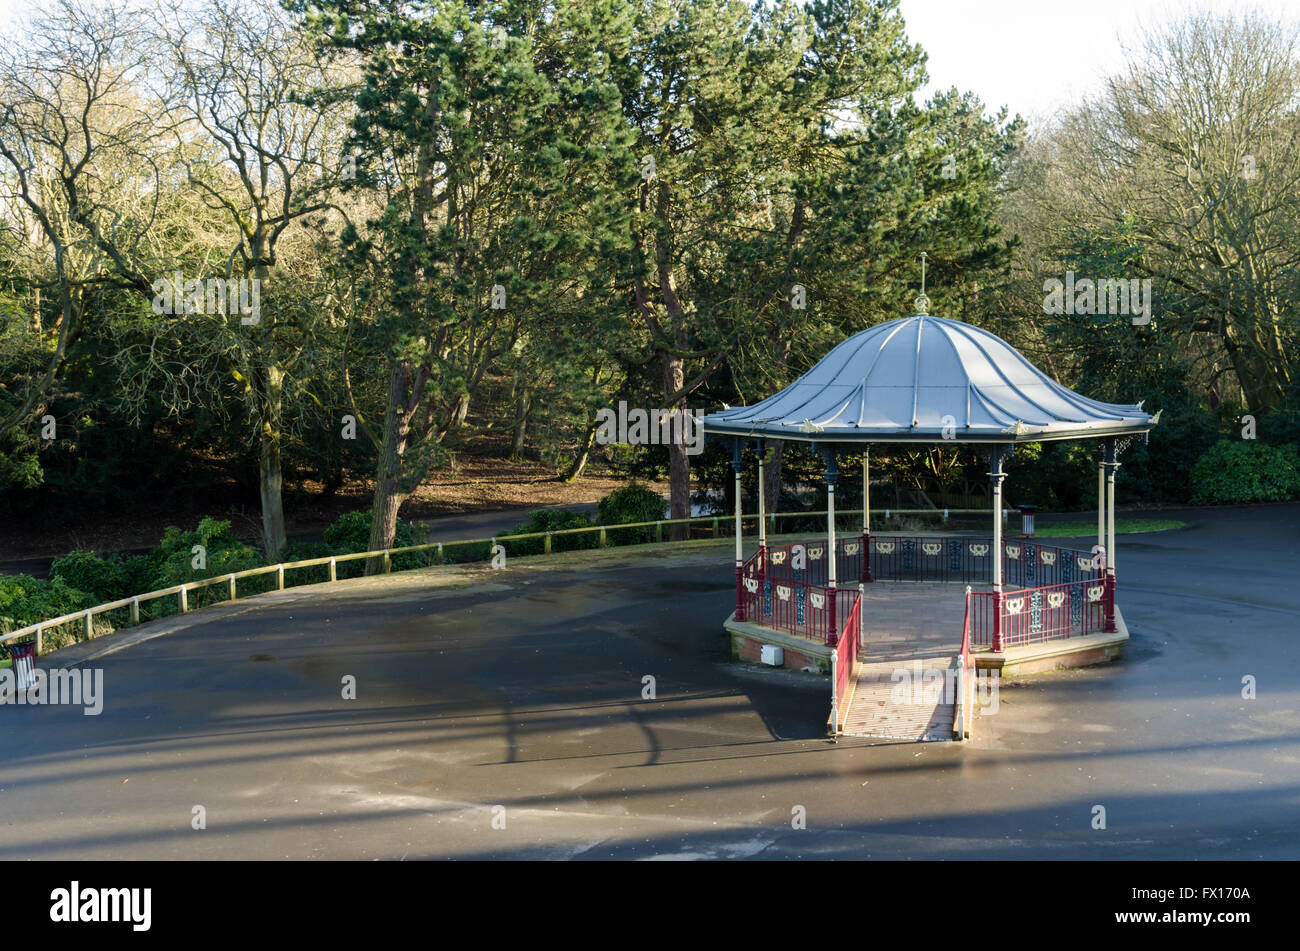 The Bandstand at Barnes Park, Sunderland, designed and built by  W. A. Baker and Son, Newport, Monmouthshire. Stock Photo